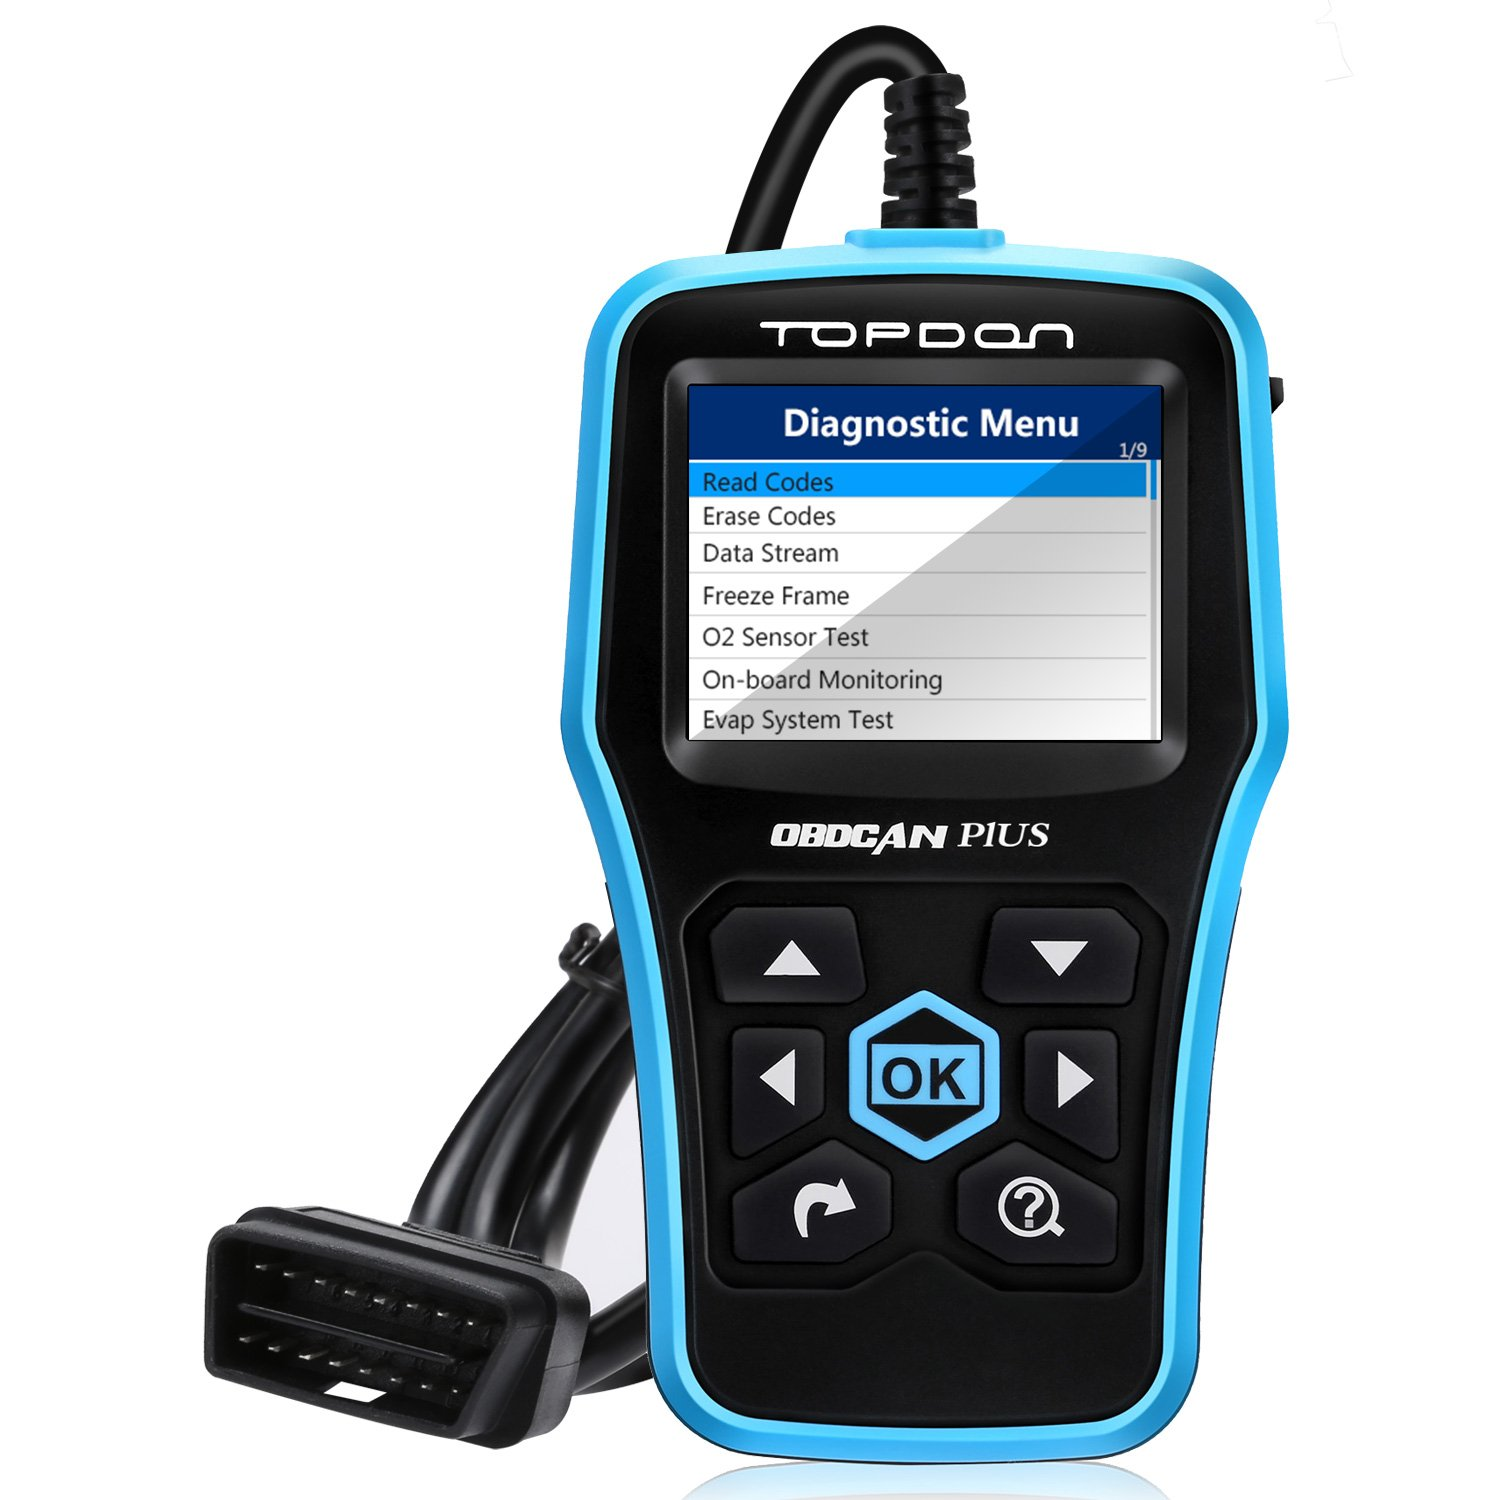 Code Reader, TT TOPDON Car Computer Diagnostic Tool OBD2 Scanner Read/Clear Engine Codes OBD II Full Function with O2 Sensor Test and On-board Monitor Test-Plus 2.0